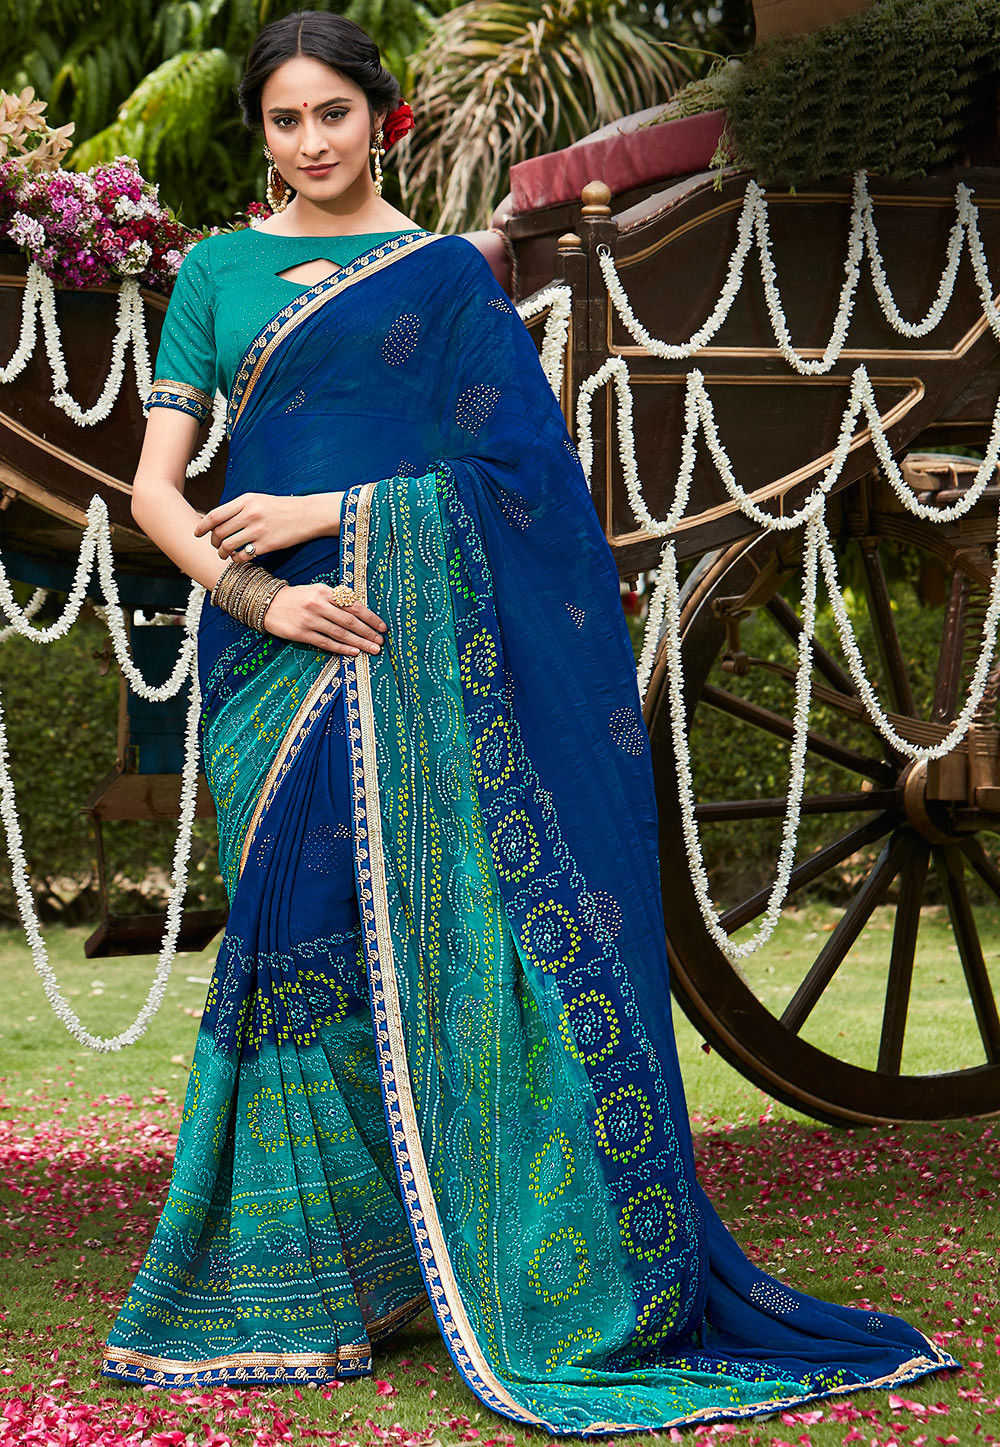 79a46cec14465 Bandhej Printed Chiffon Saree in Royal Blue and Teal Green   SSF5789